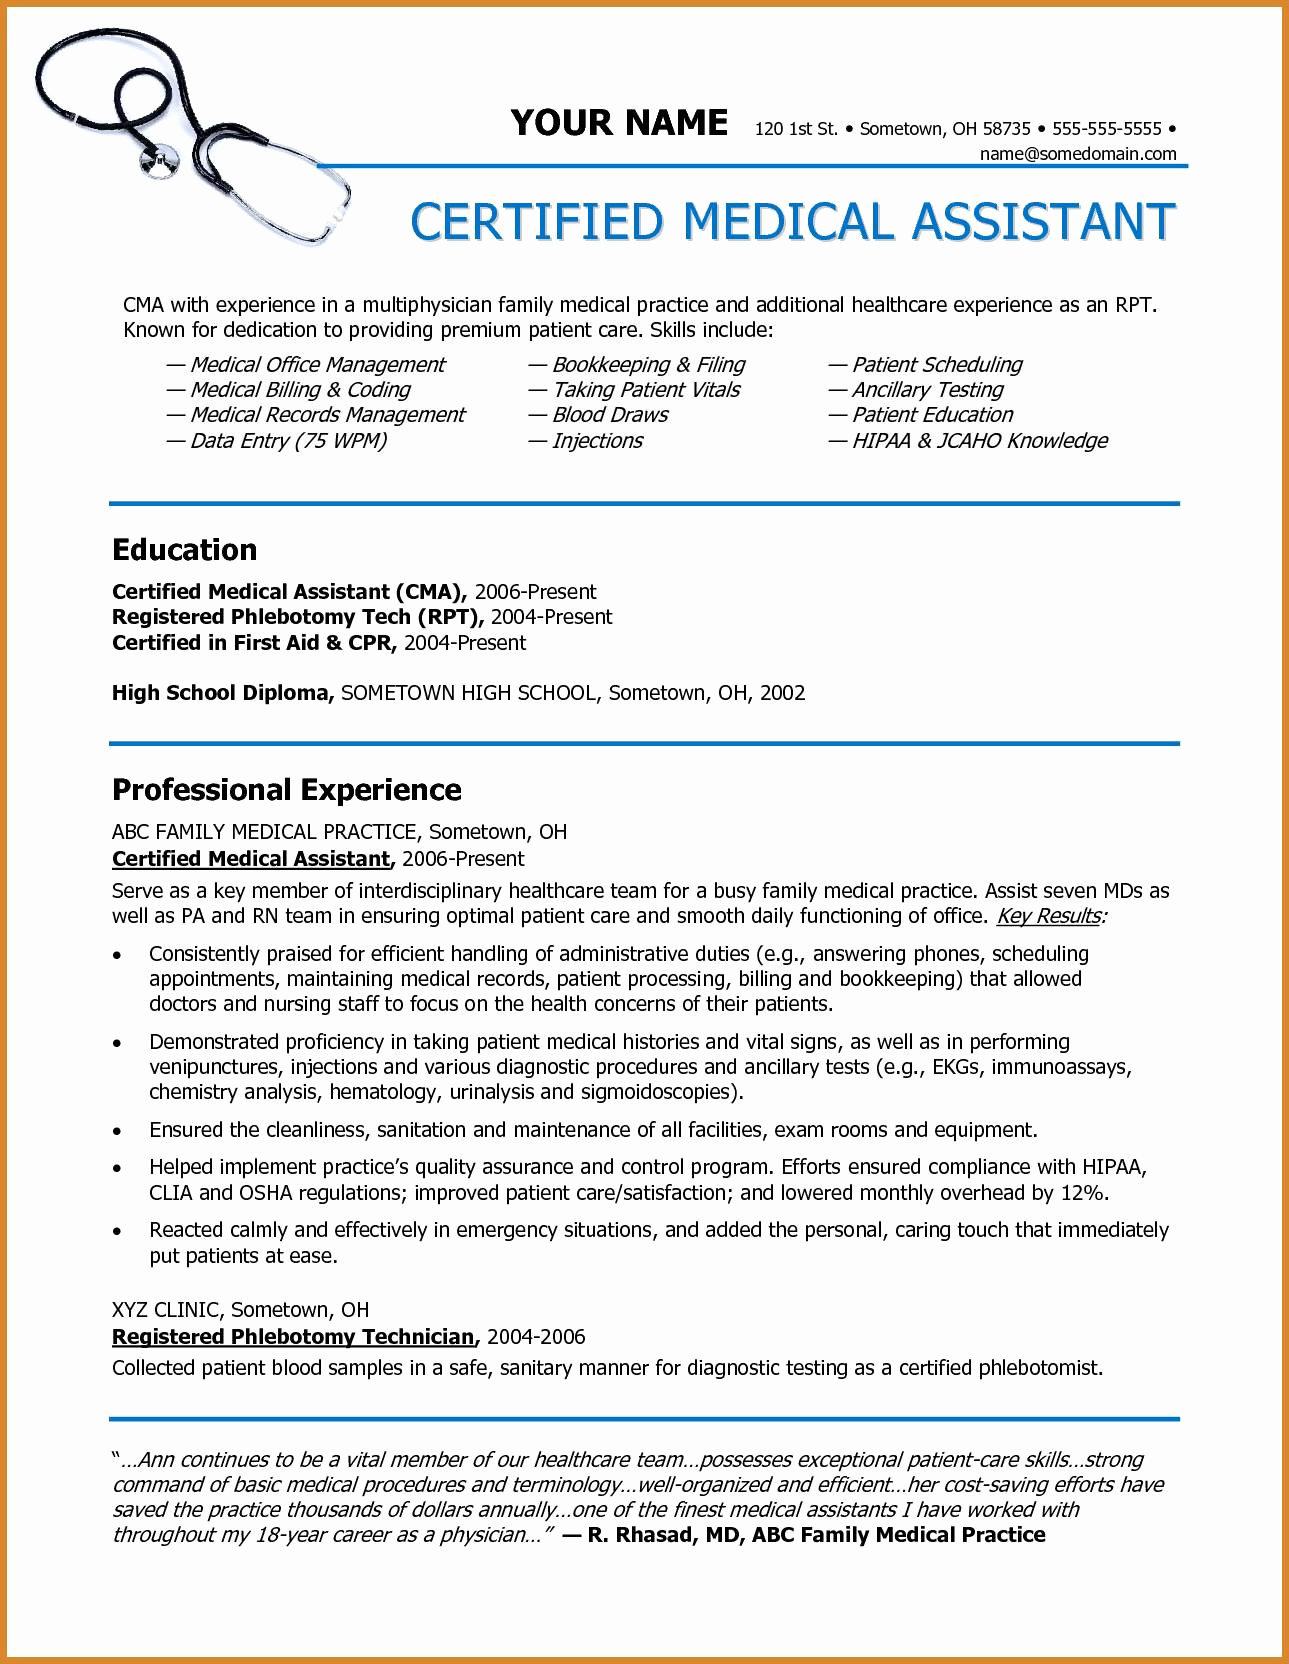 Medical Scribe Cover Letter Template - Medical Scribe Cover Letter Template Lovely Example Medical Billing